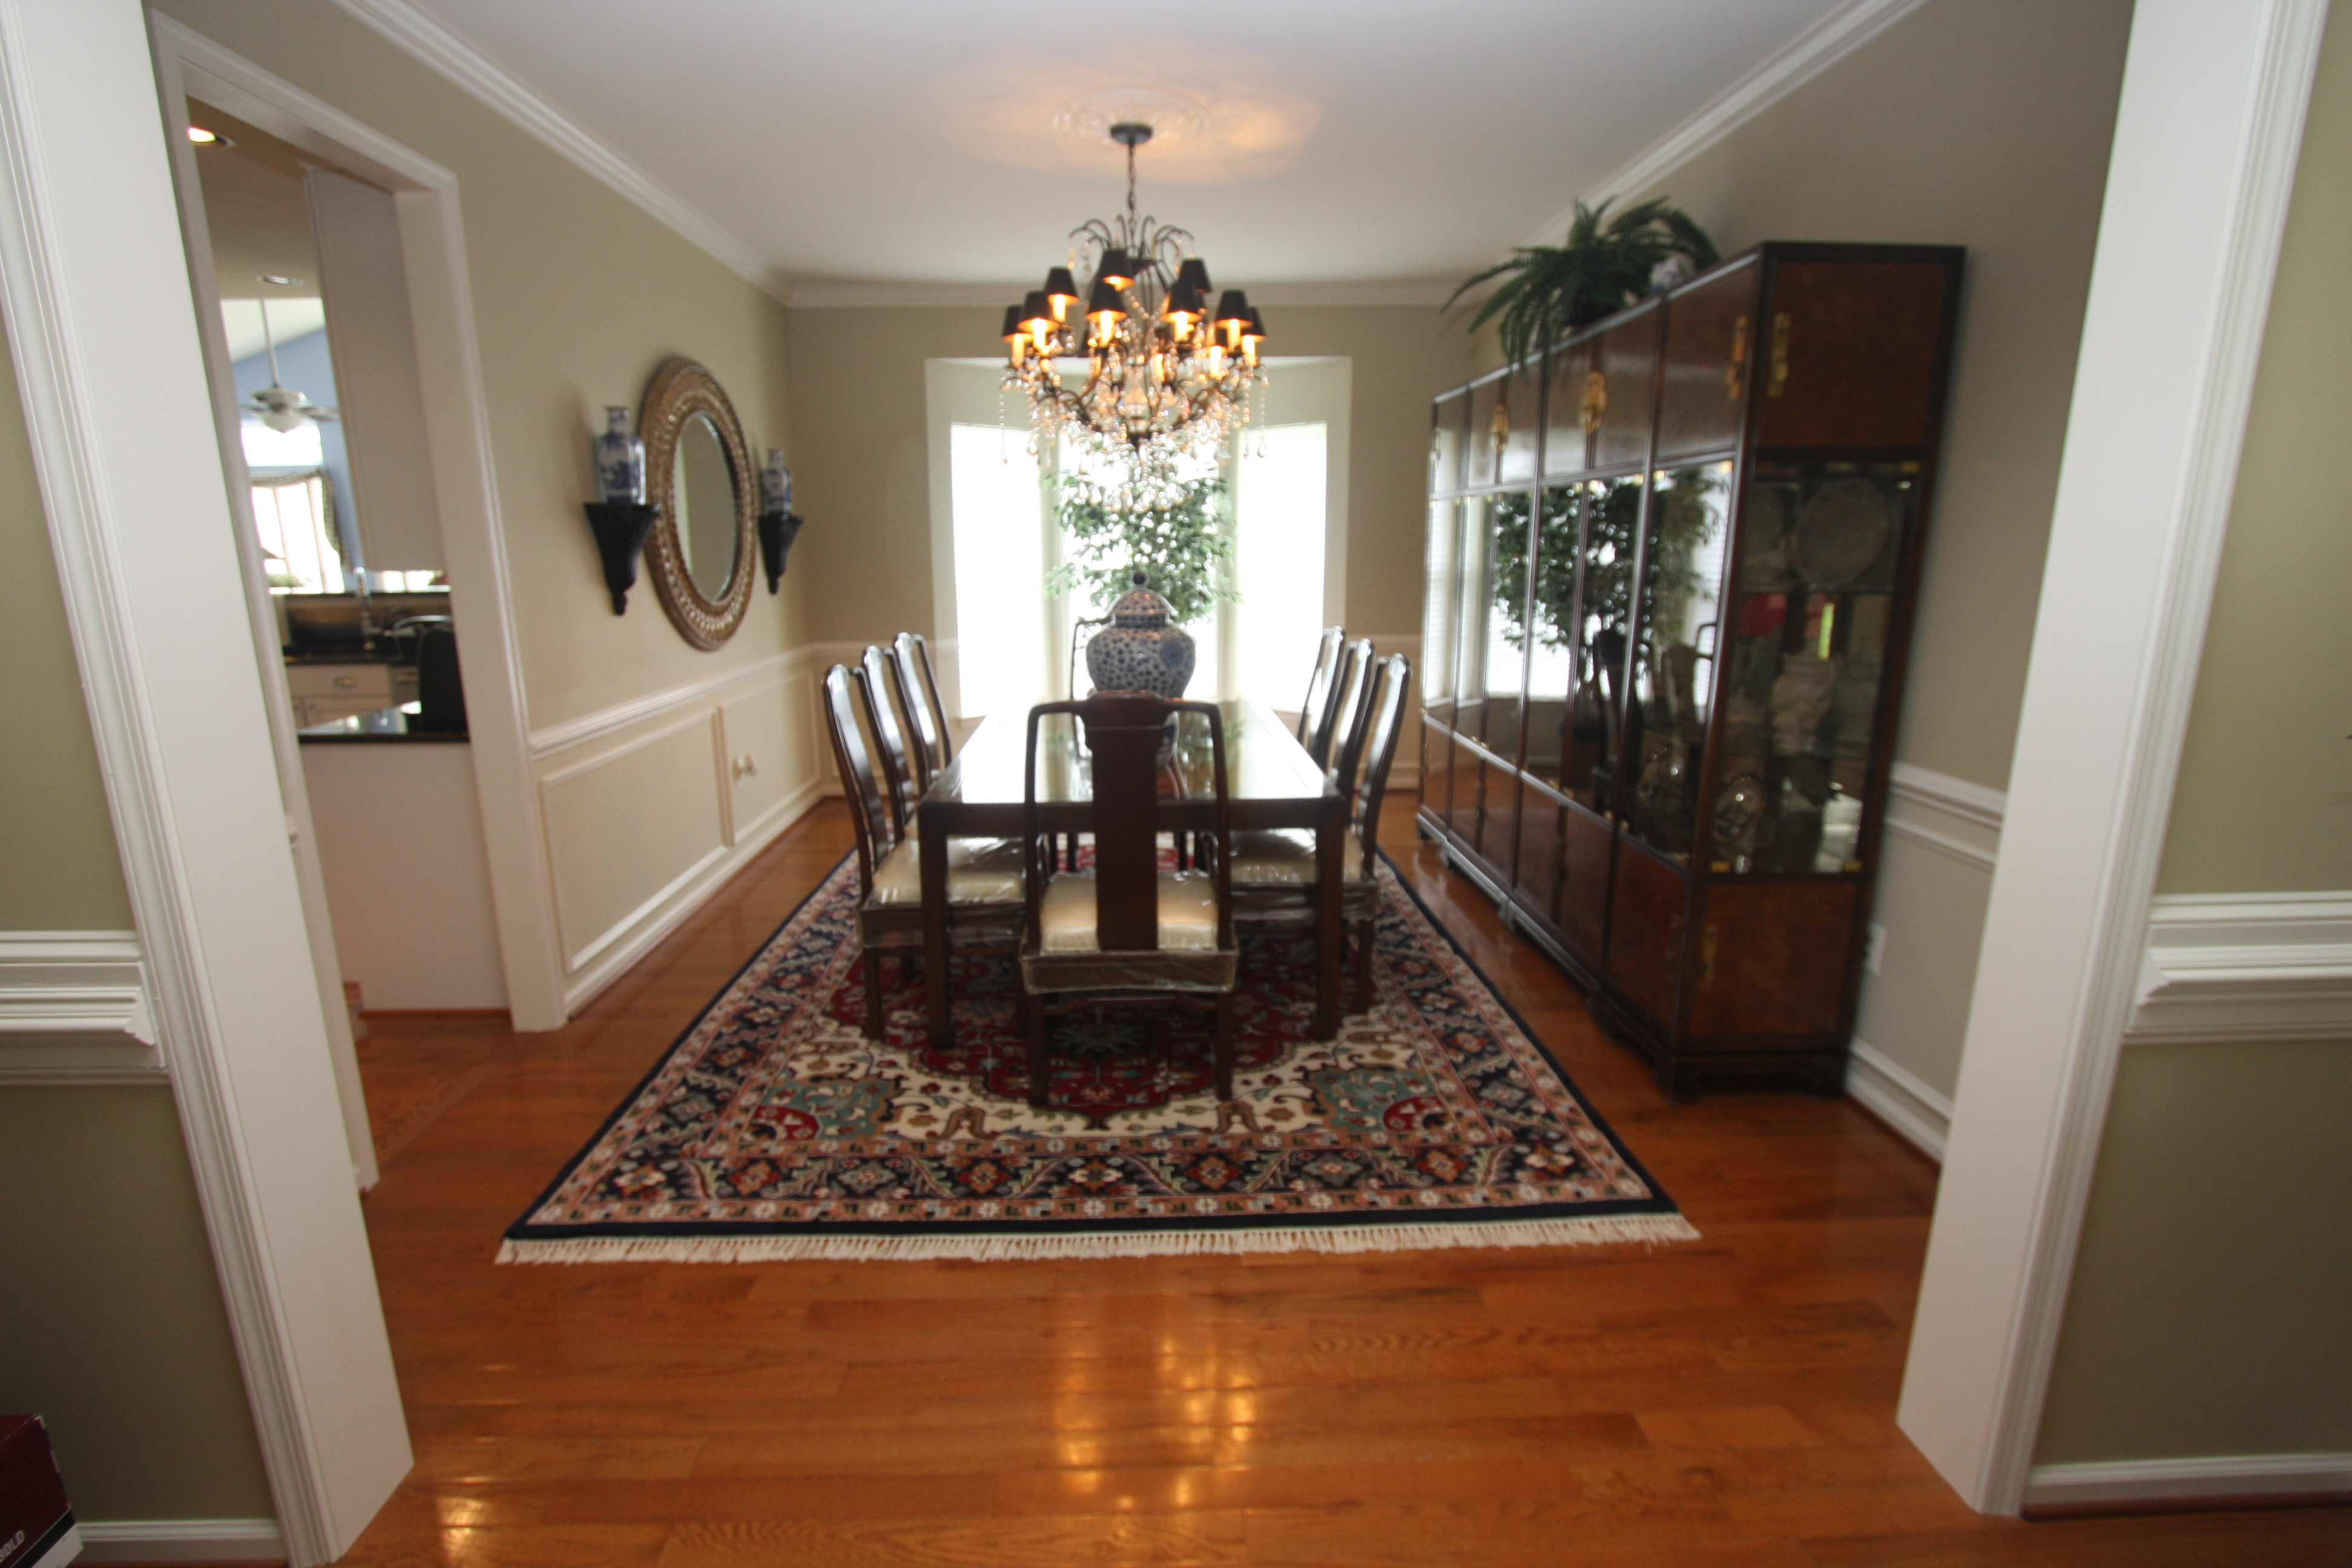 Model Home Furniture Clearance Center Md Home Box Ideas